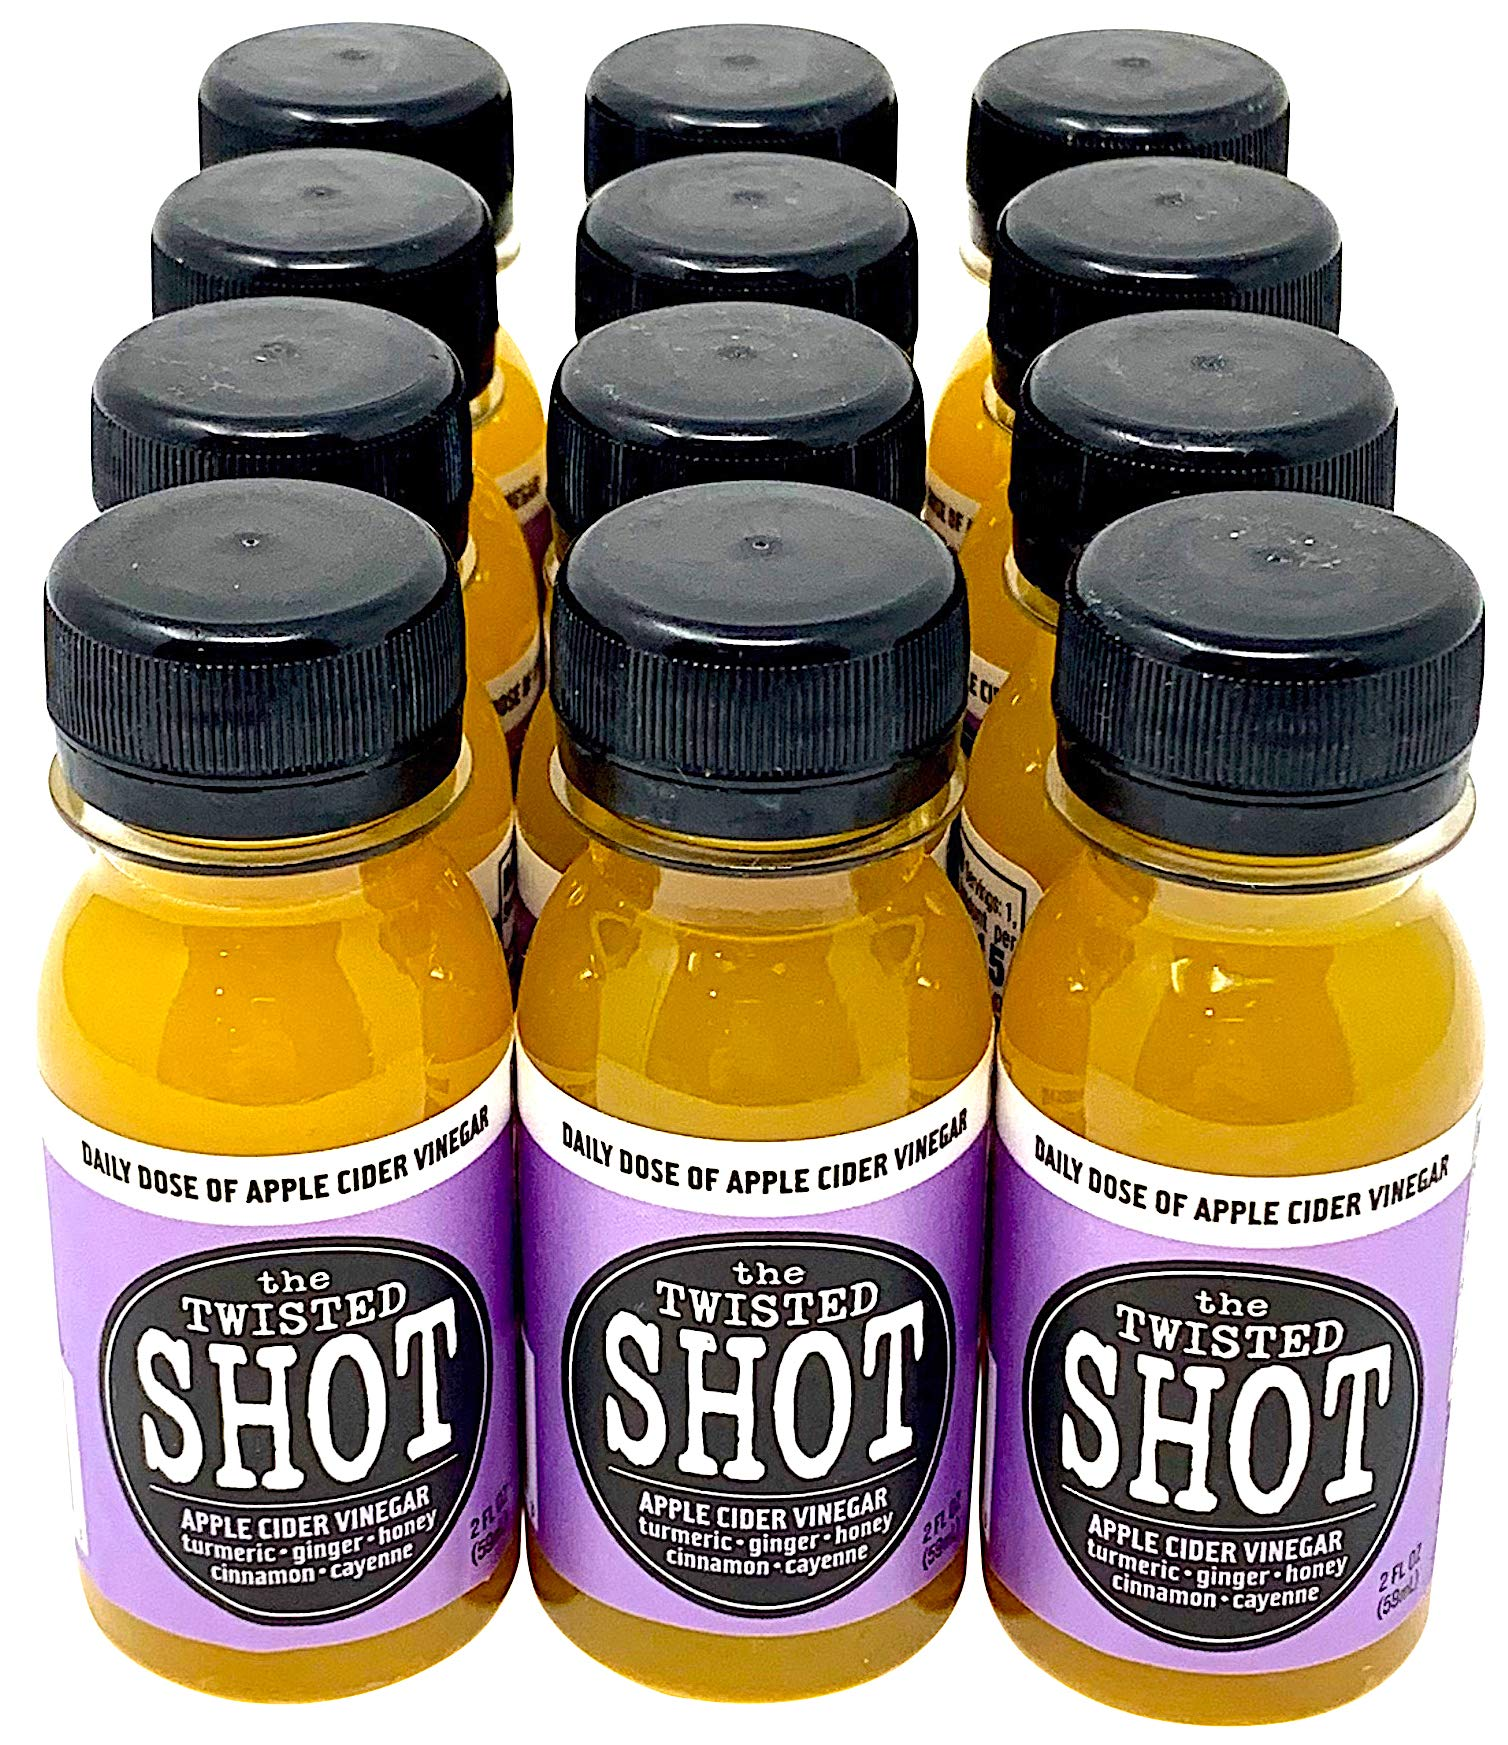 The Twisted Shot - Organic Apple Cider Vinegar shot with Turmeric, Ginger, Cinnamon, Honey & Cayenne - 12-pack of 2oz shots